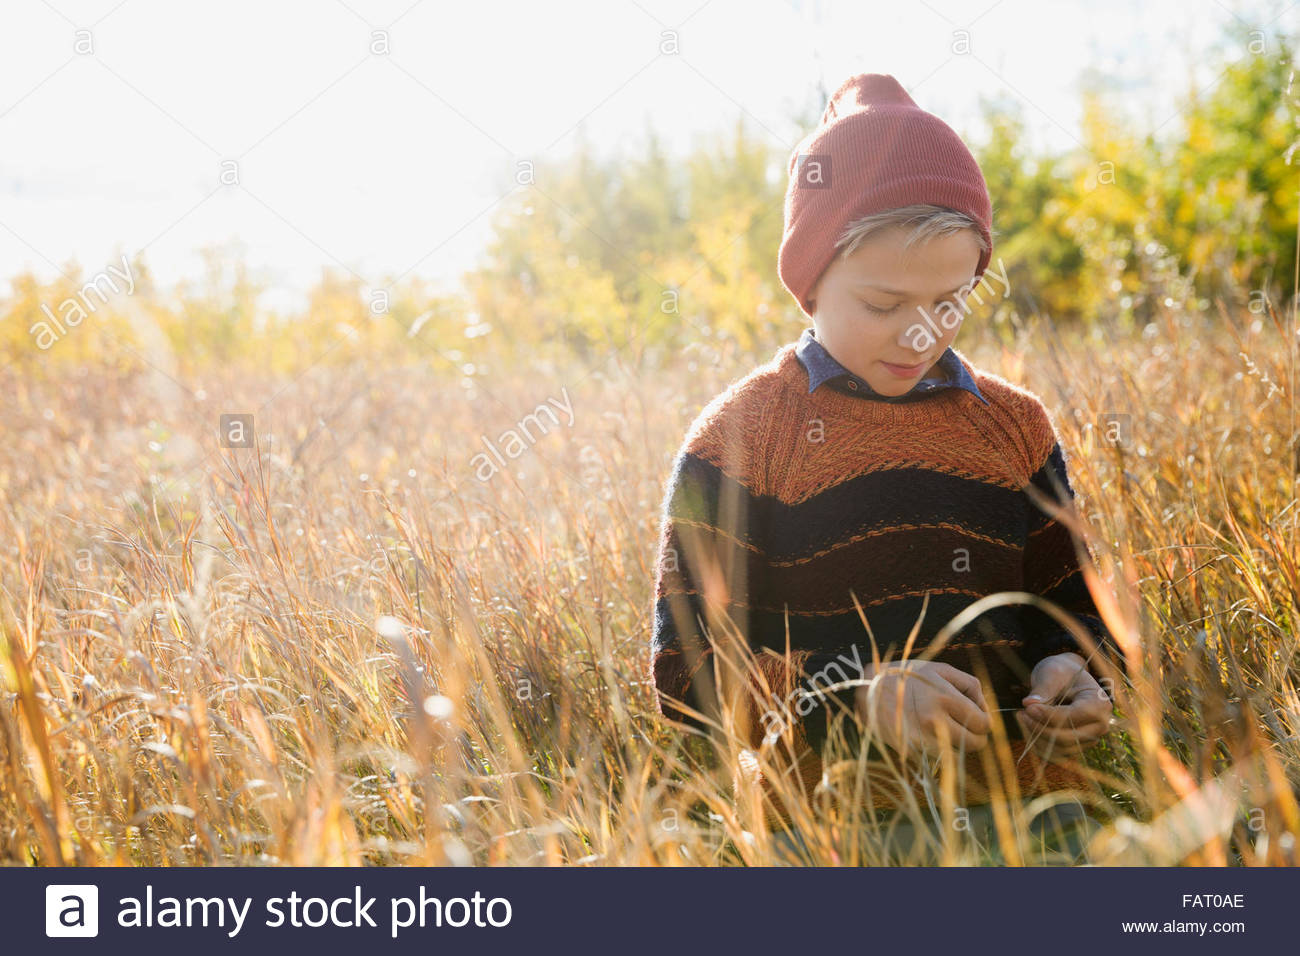 Boy sitting in sunny golden grass - Stock Image